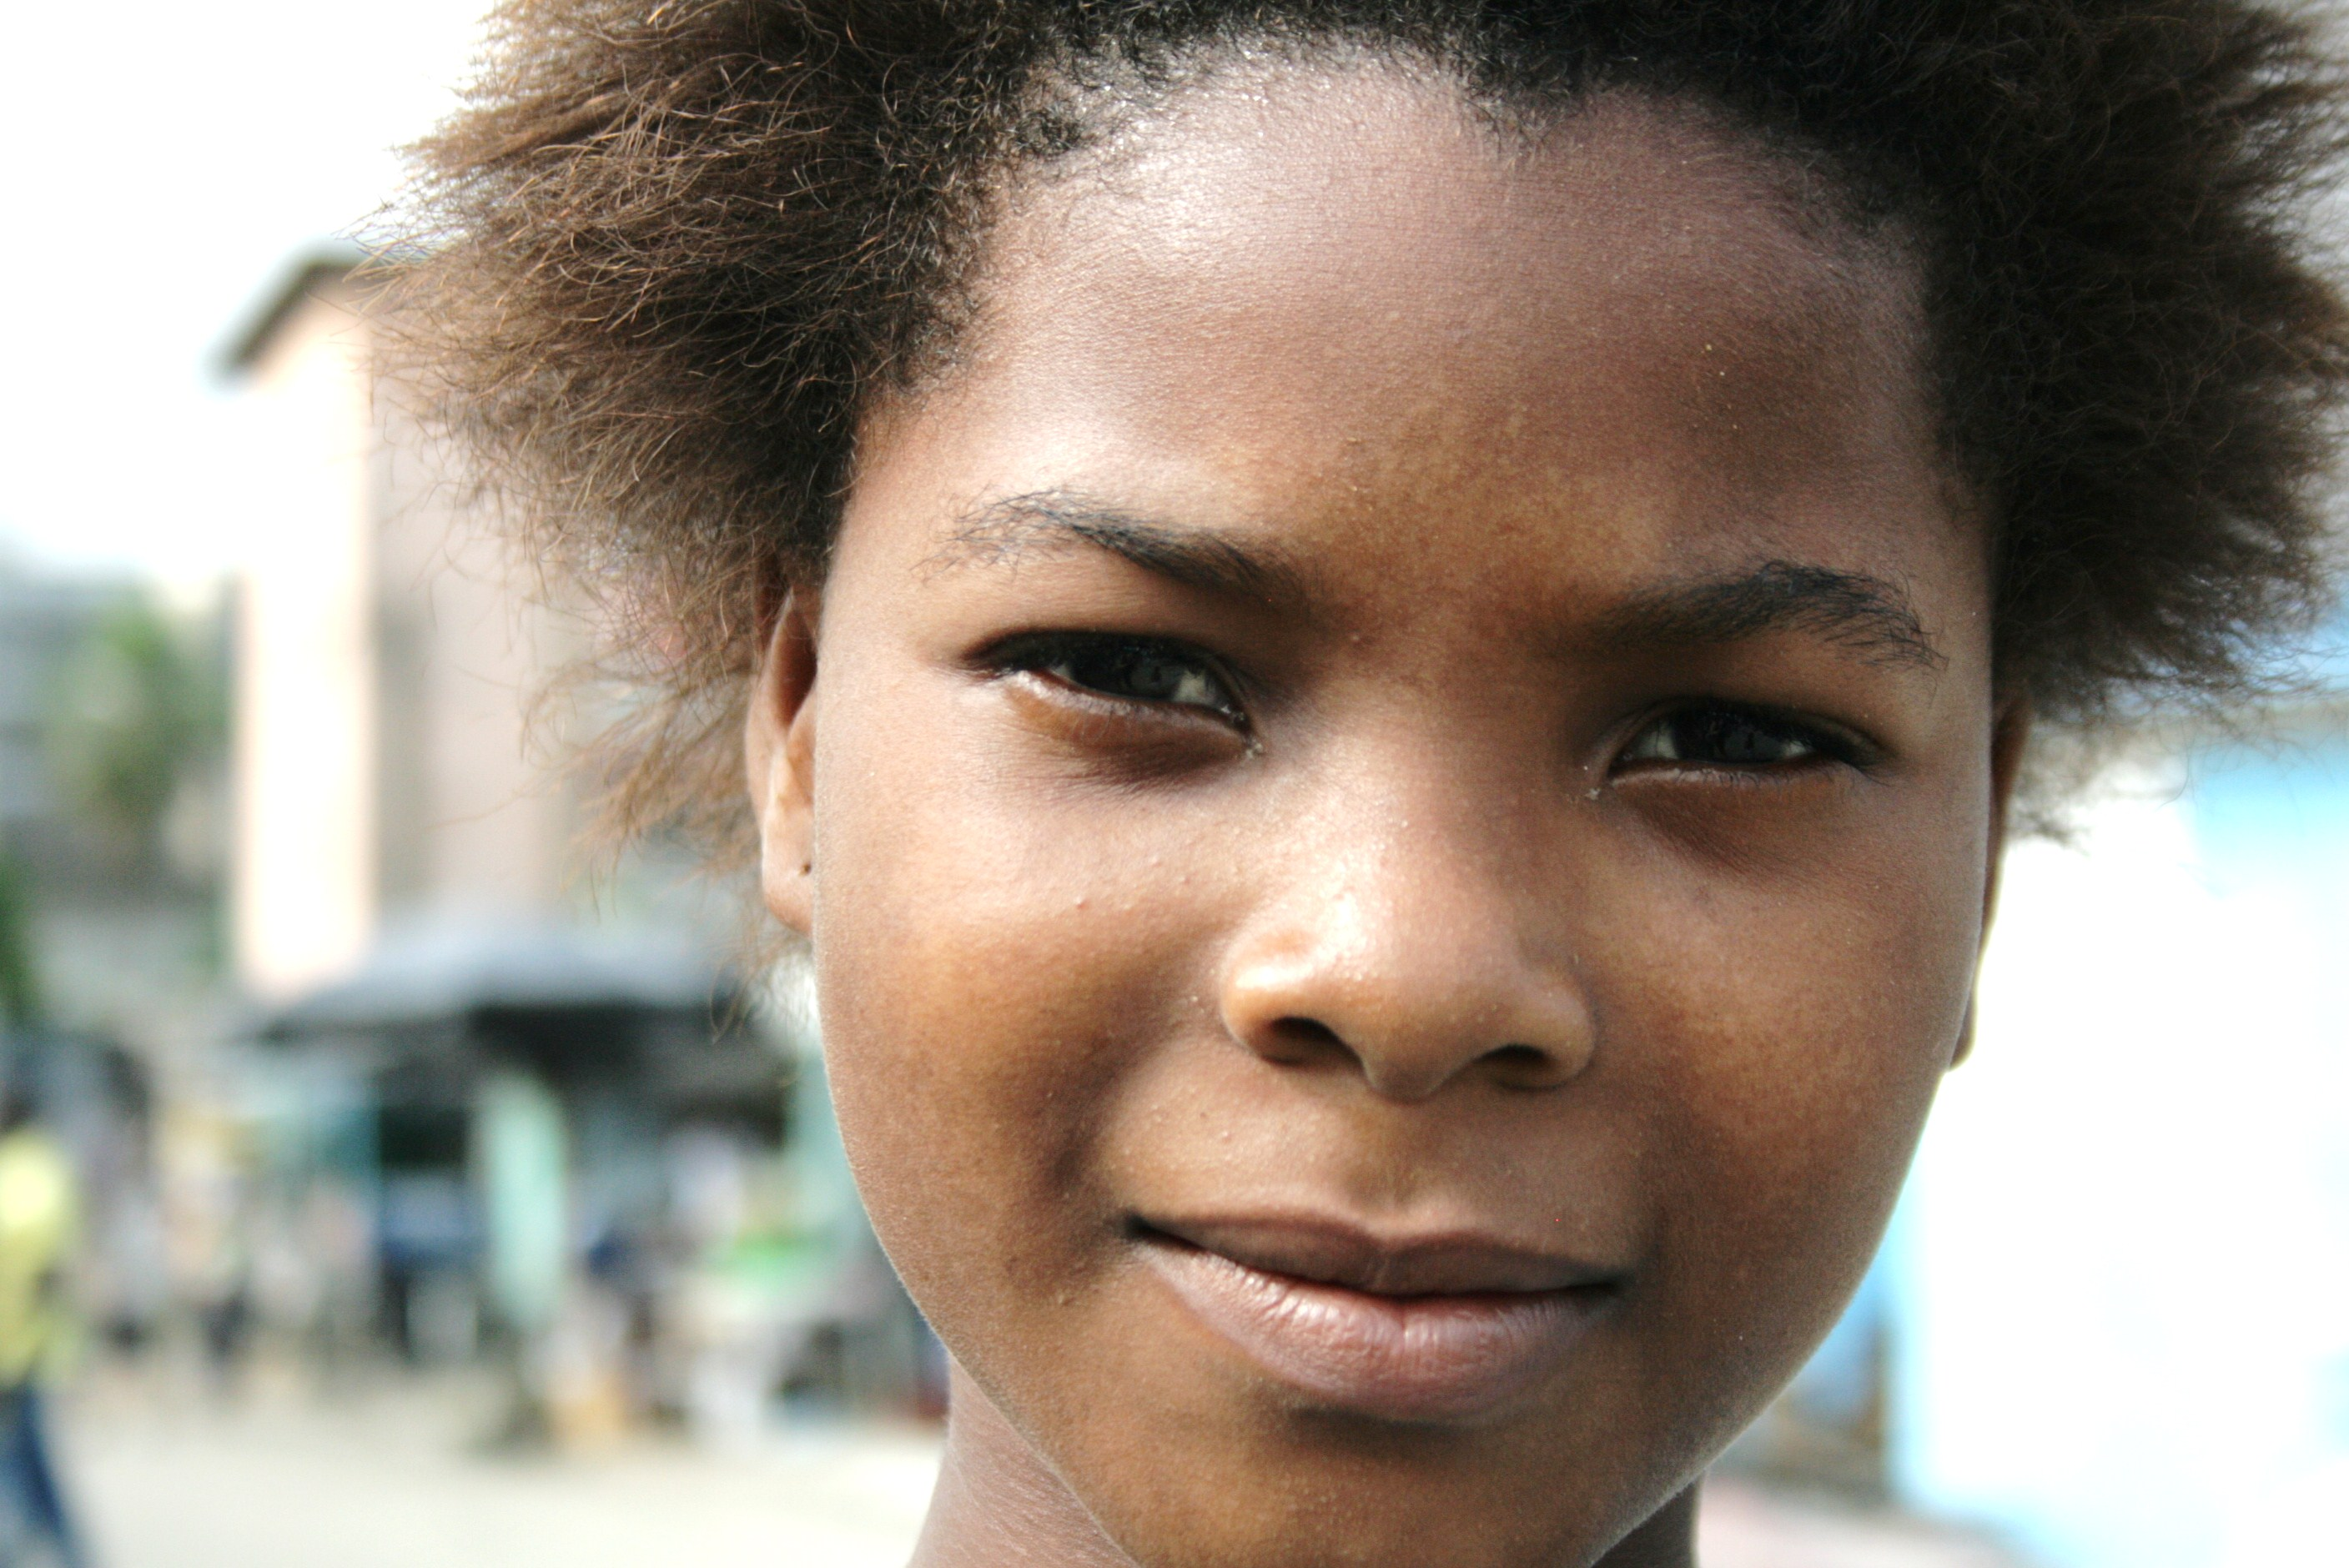 A girl in the Adjamé neighbourhood of Côte d'Ivoire's commercial capital, Abidjan. July 2011